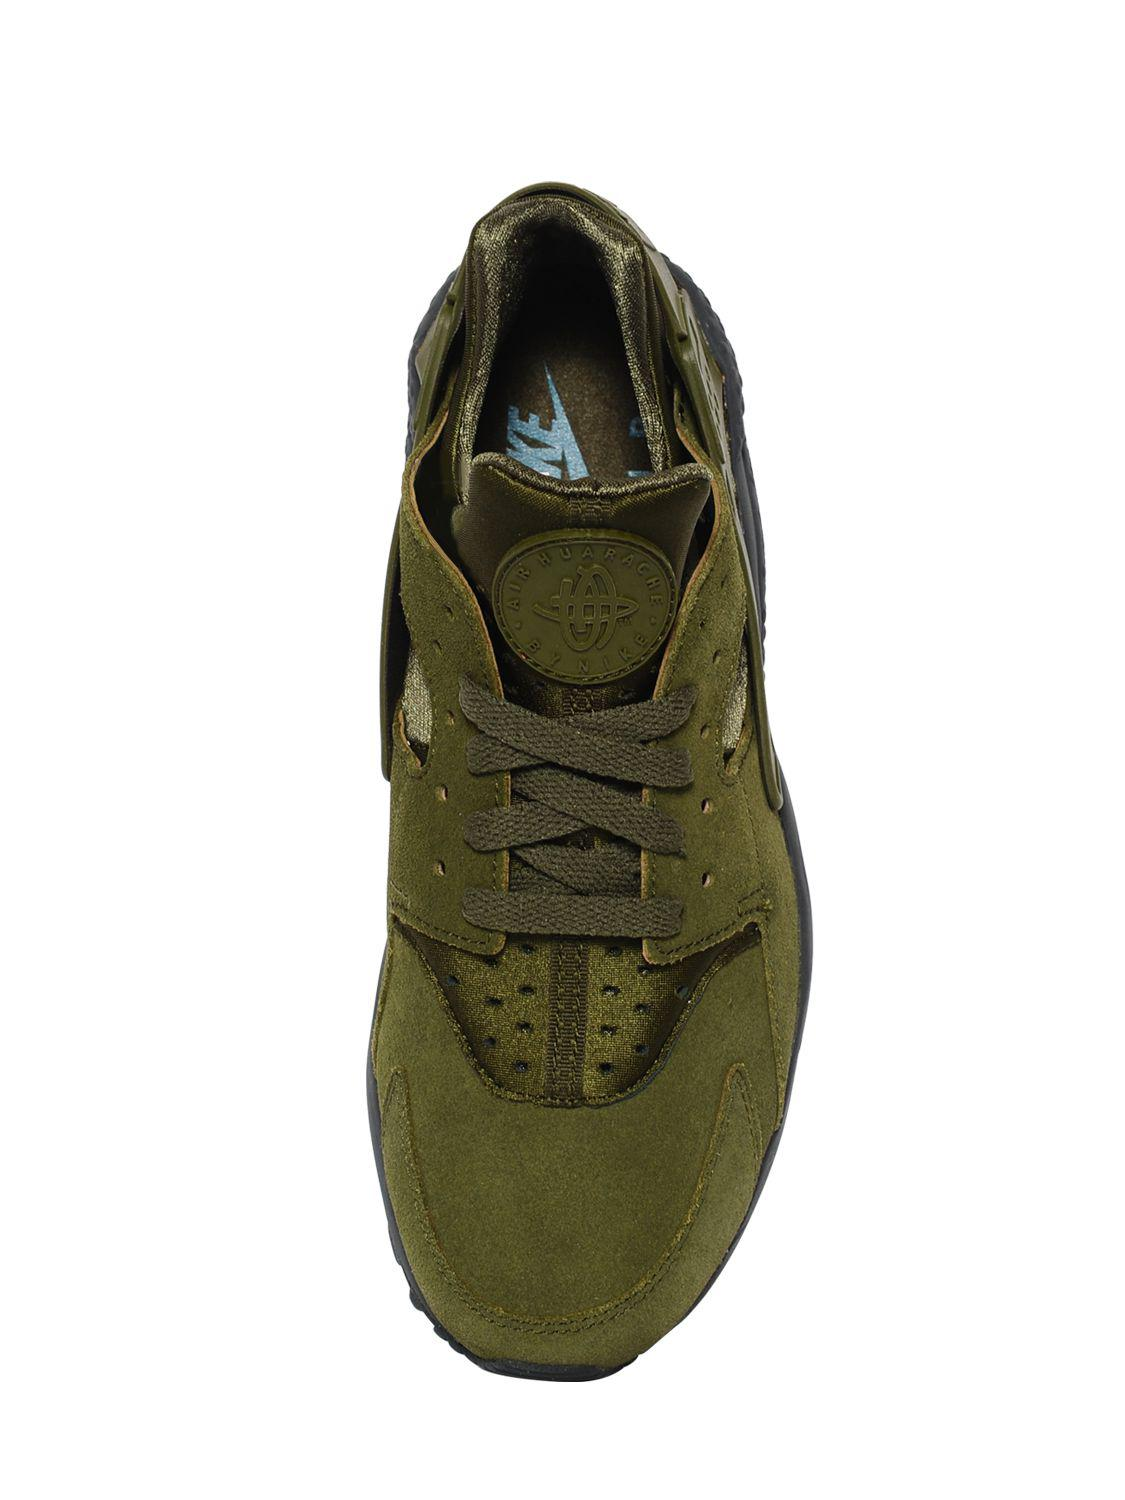 8fdd40105c32 Lyst - Nike Air Huarache Faux Suede Sneakers in Green for Men